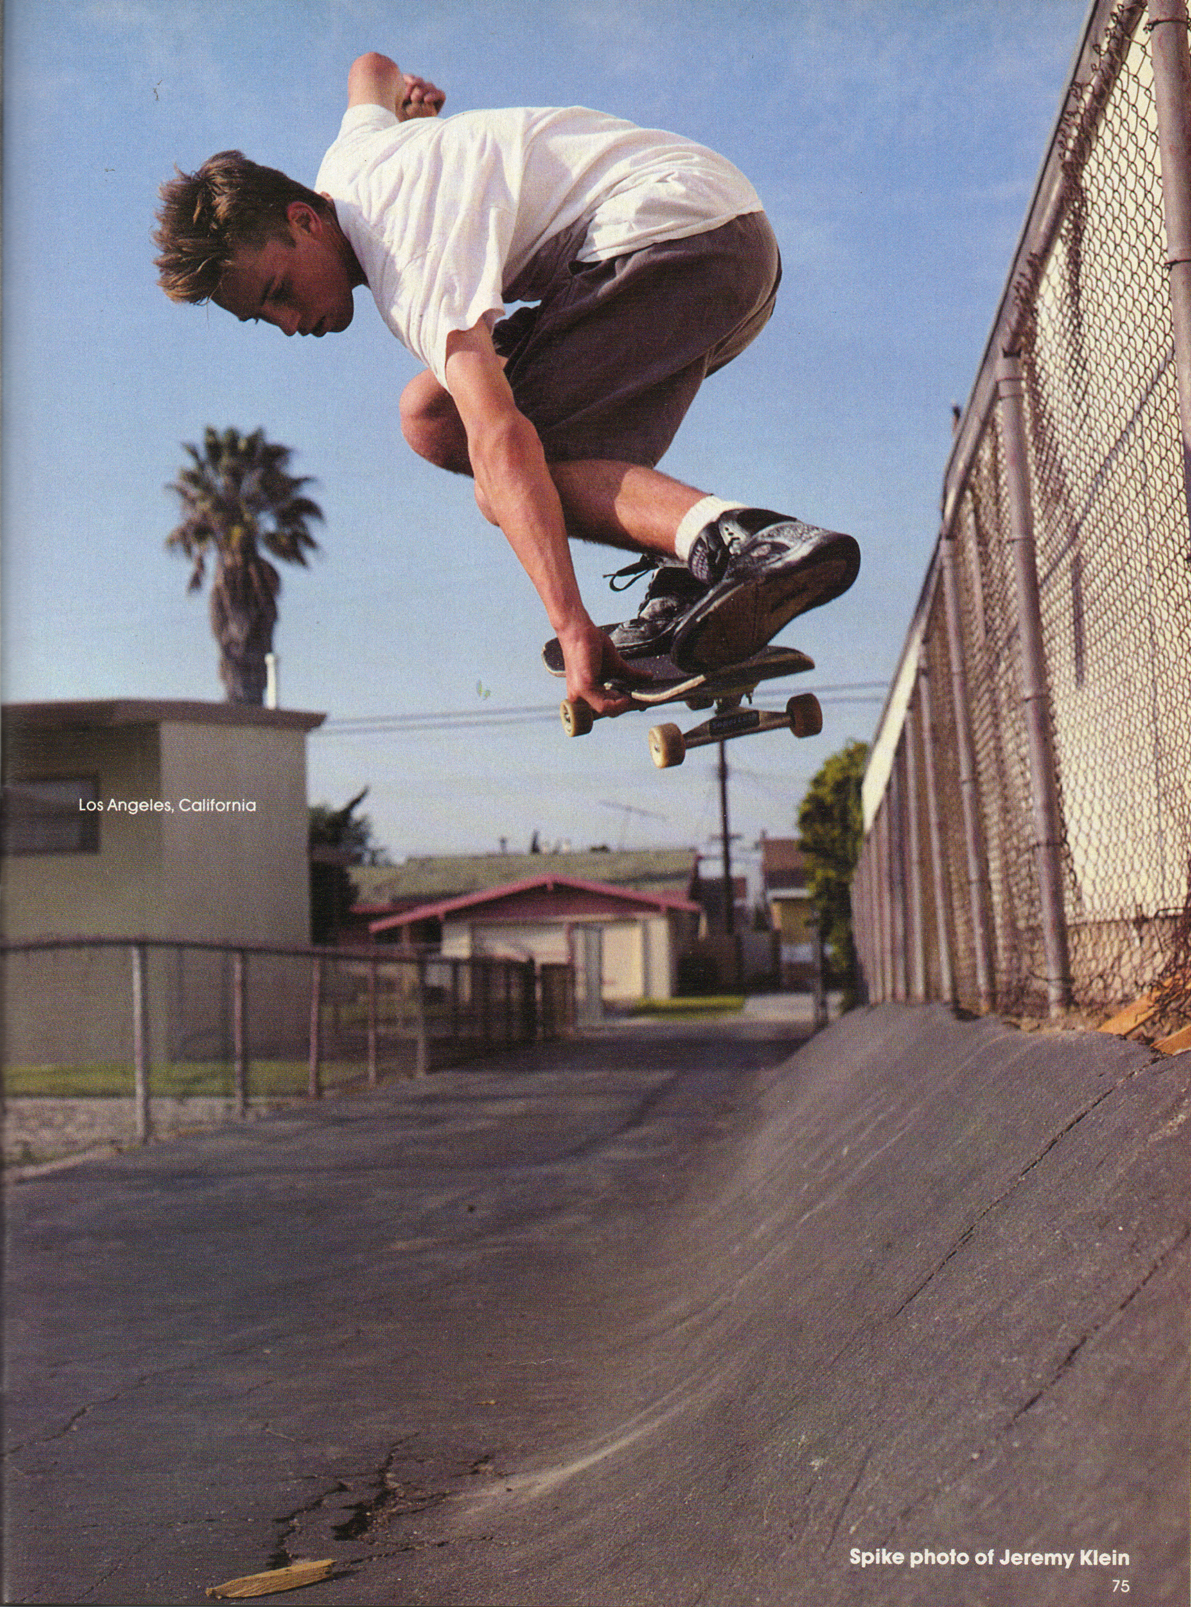 Jeremy Klein. Photo: Spike. TWS Sept. 1990, Vol. 8, No. 9.